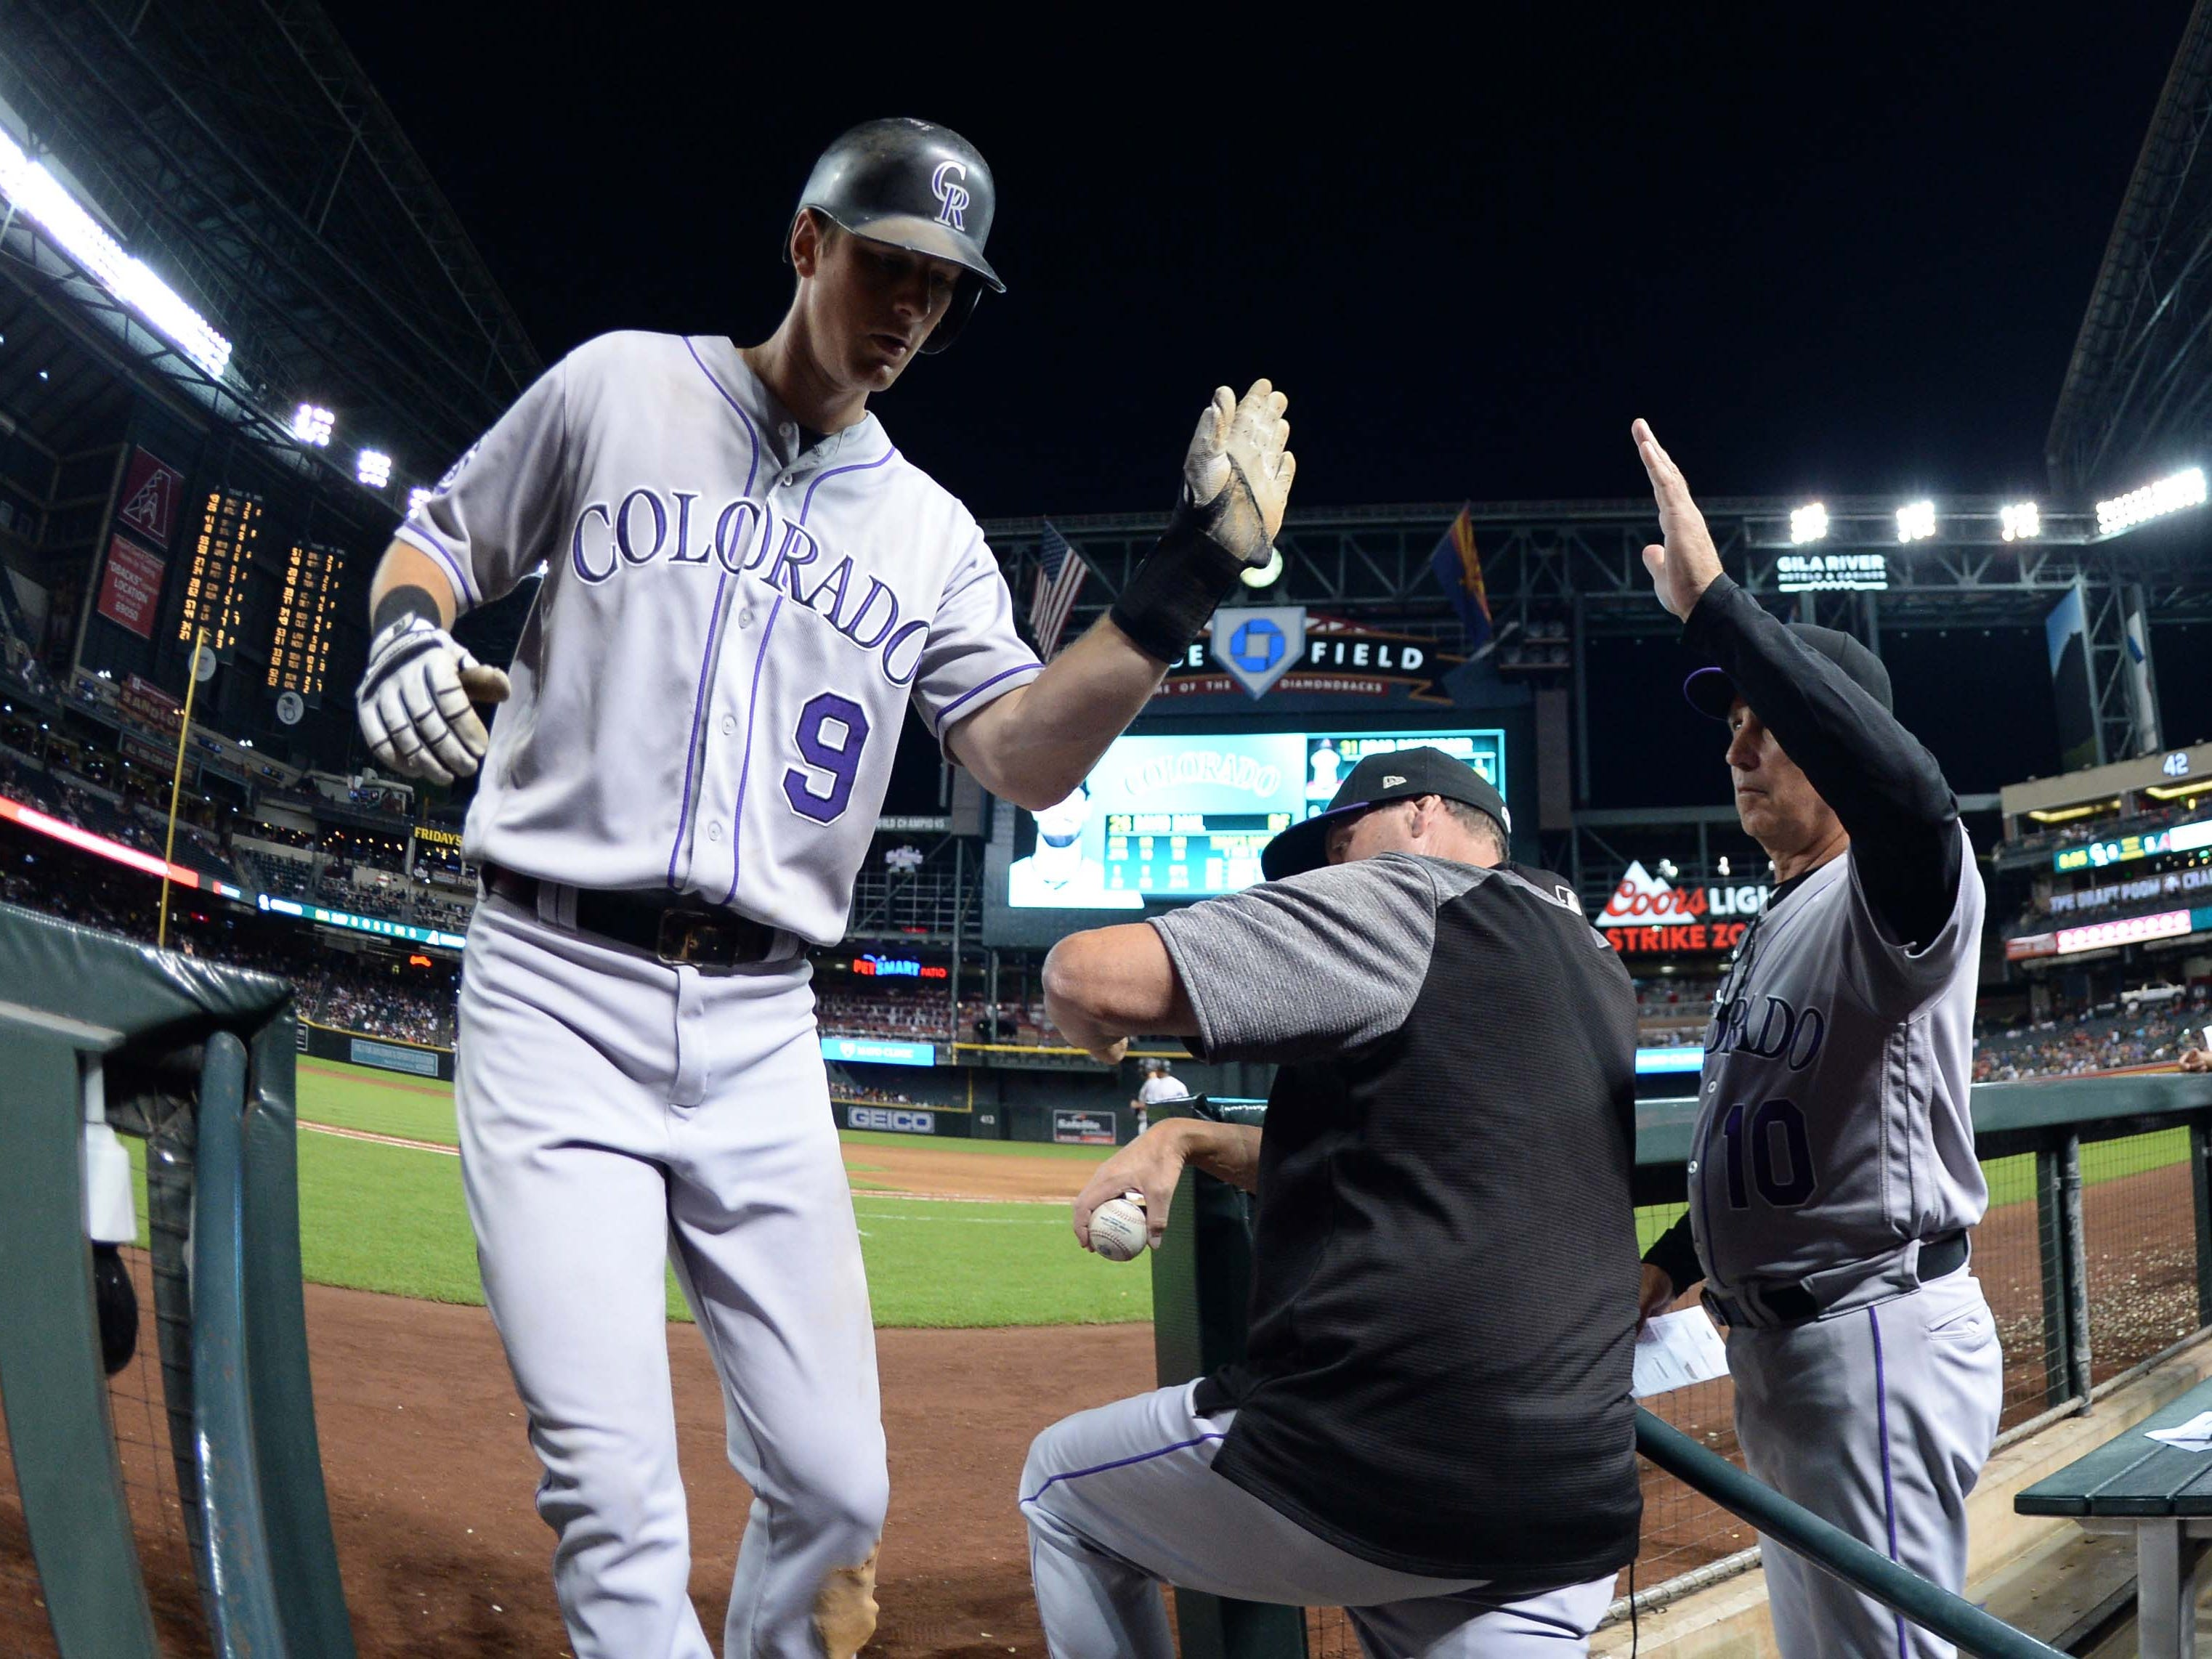 Sep 22, 2018; Phoenix, AZ, USA; Colorado Rockies second baseman DJ LeMahieu (9) slaps hands with Colorado Rockies manager Bud Black (10) after scoring a run against the Arizona Diamondbacks during the ninth inning at Chase Field.